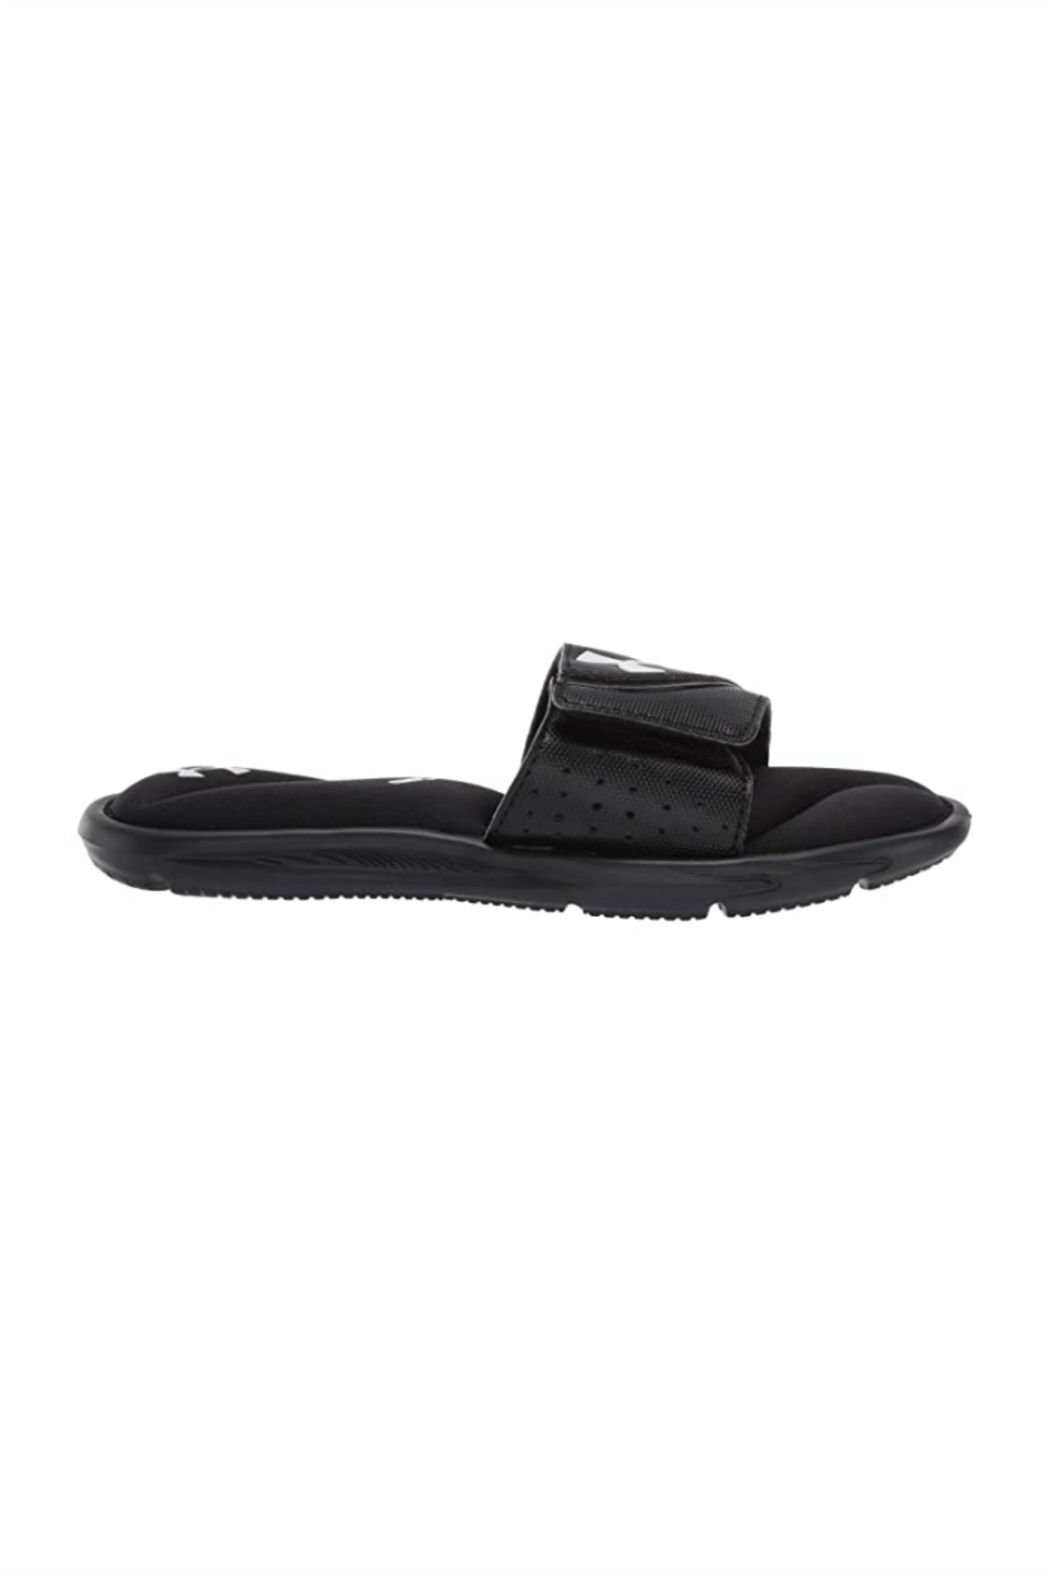 Under Armour Kids Ignite Velcro Slide - Front Cropped Image